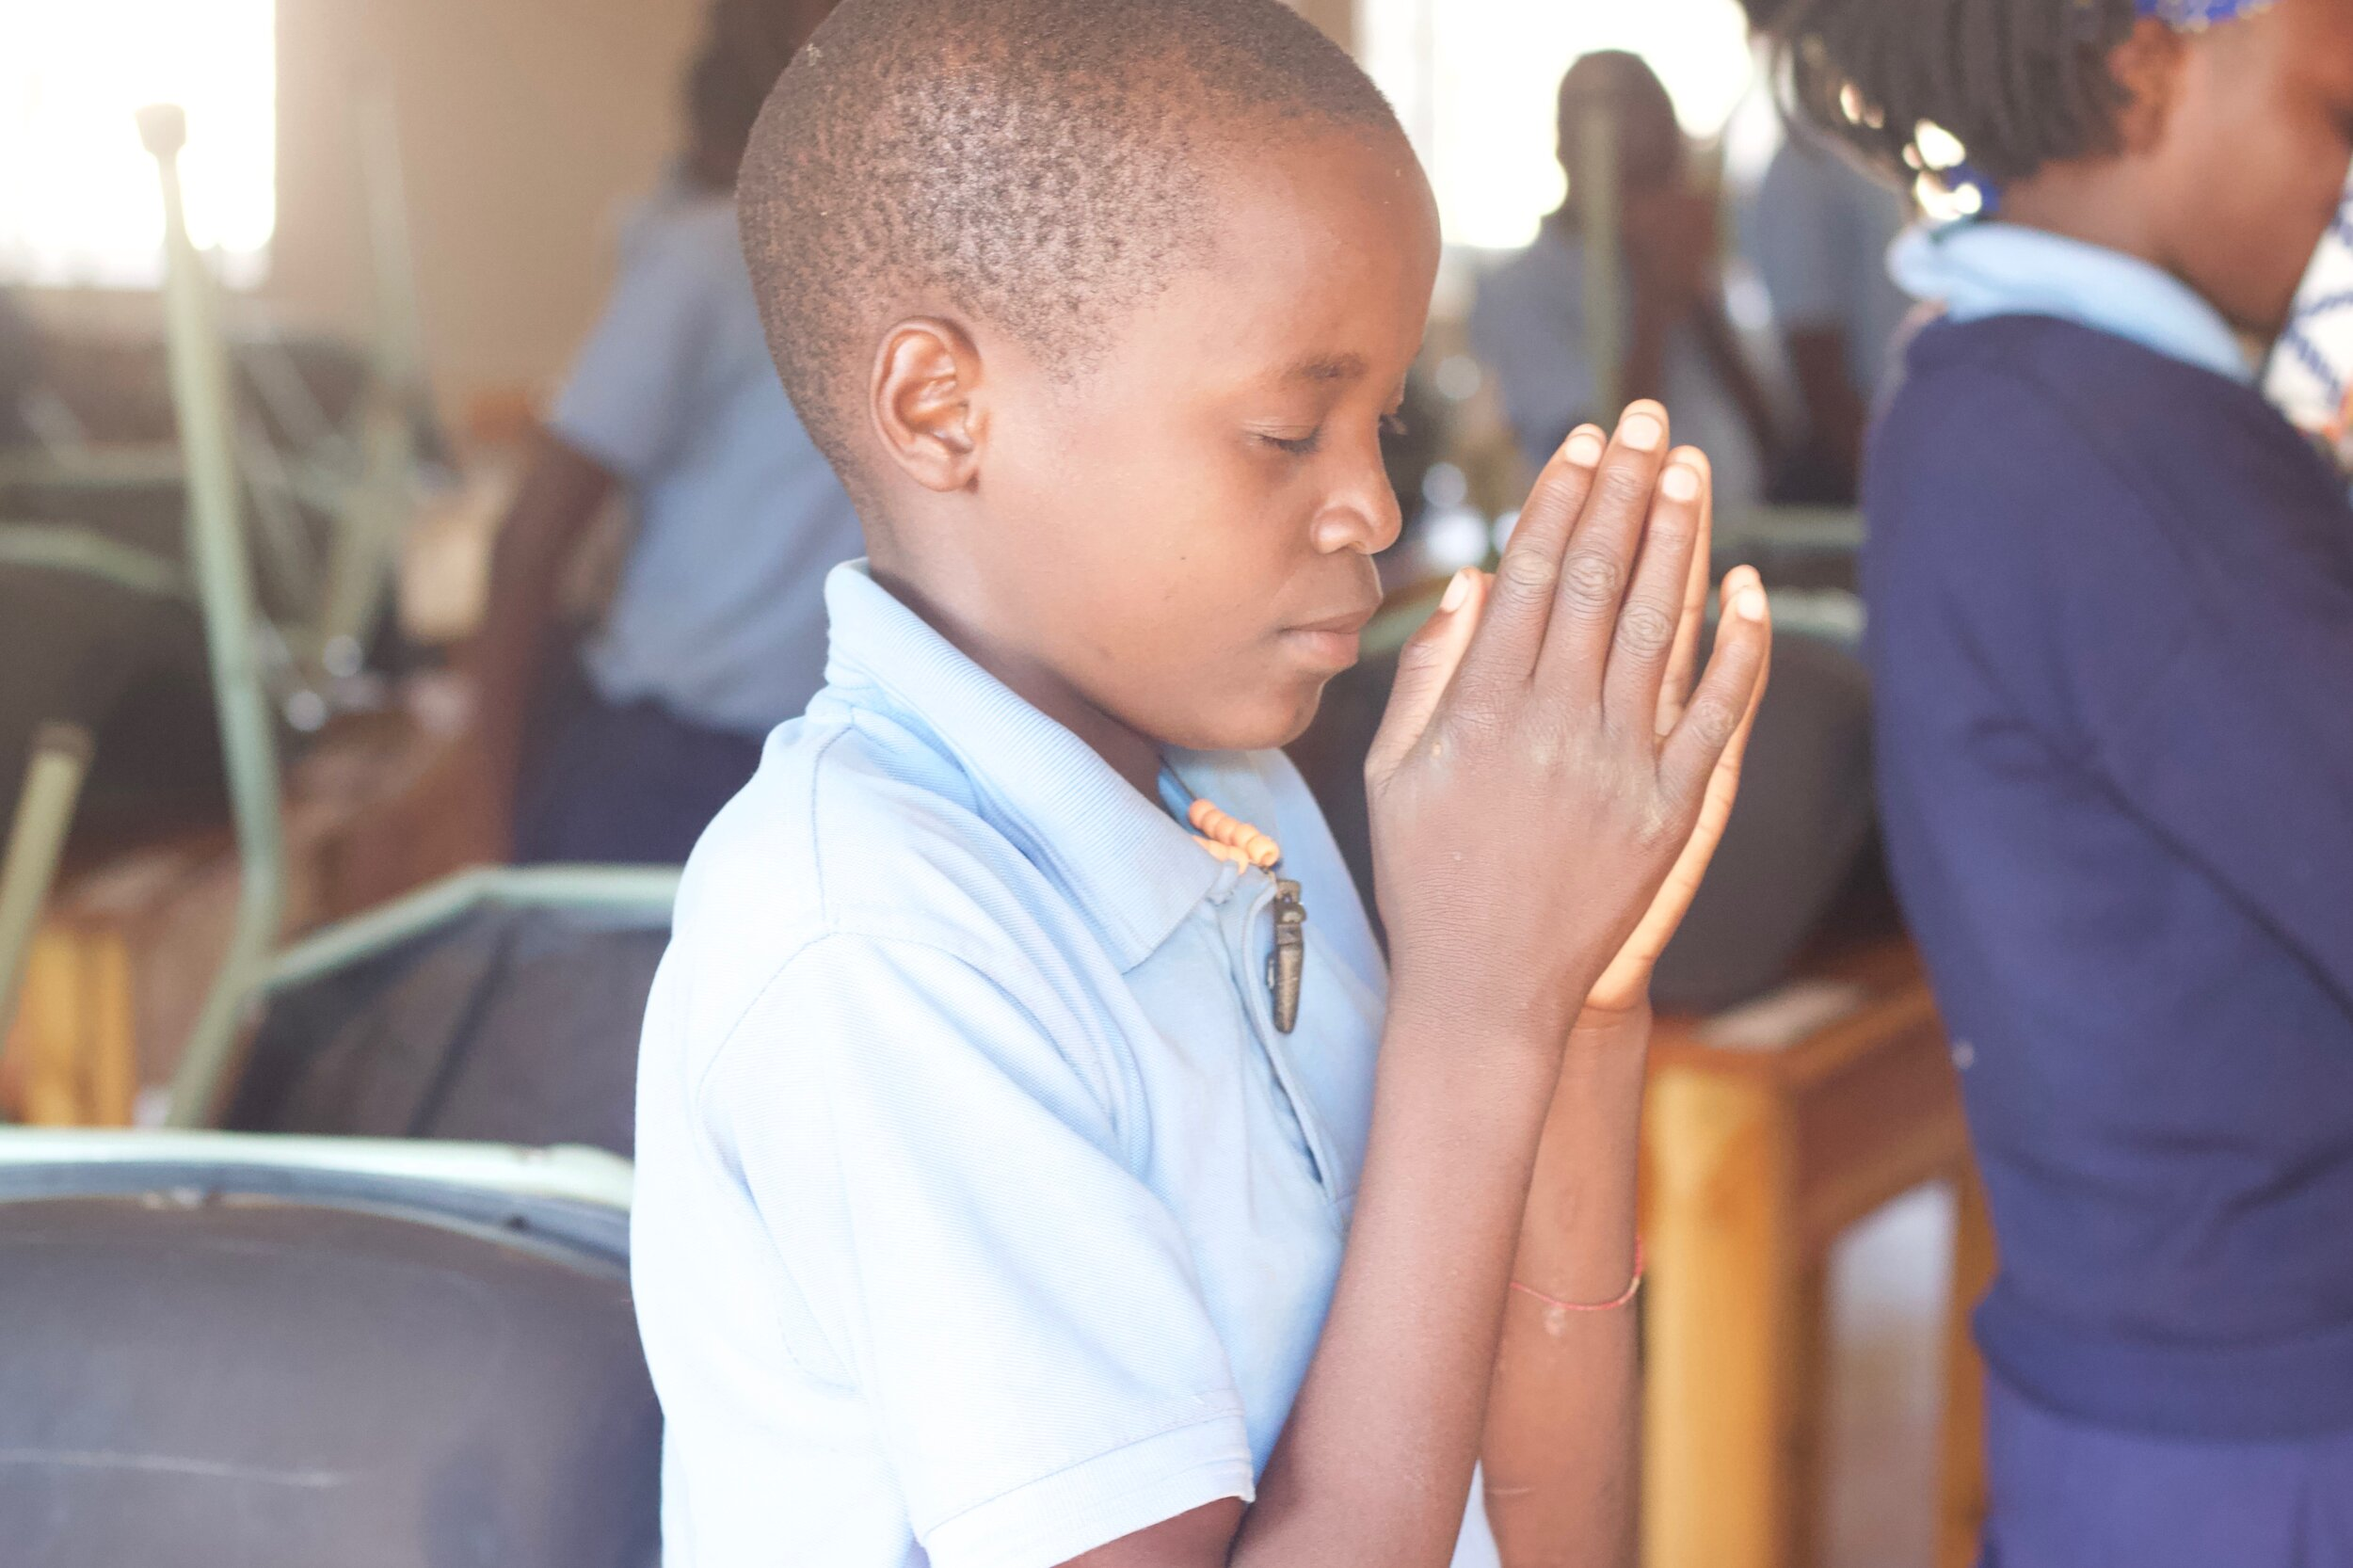 To finish school, students pray. They thank Him for what He does and how He shows His beauty, power, and love throughout the day. And they ask God to continue to bless them at home.